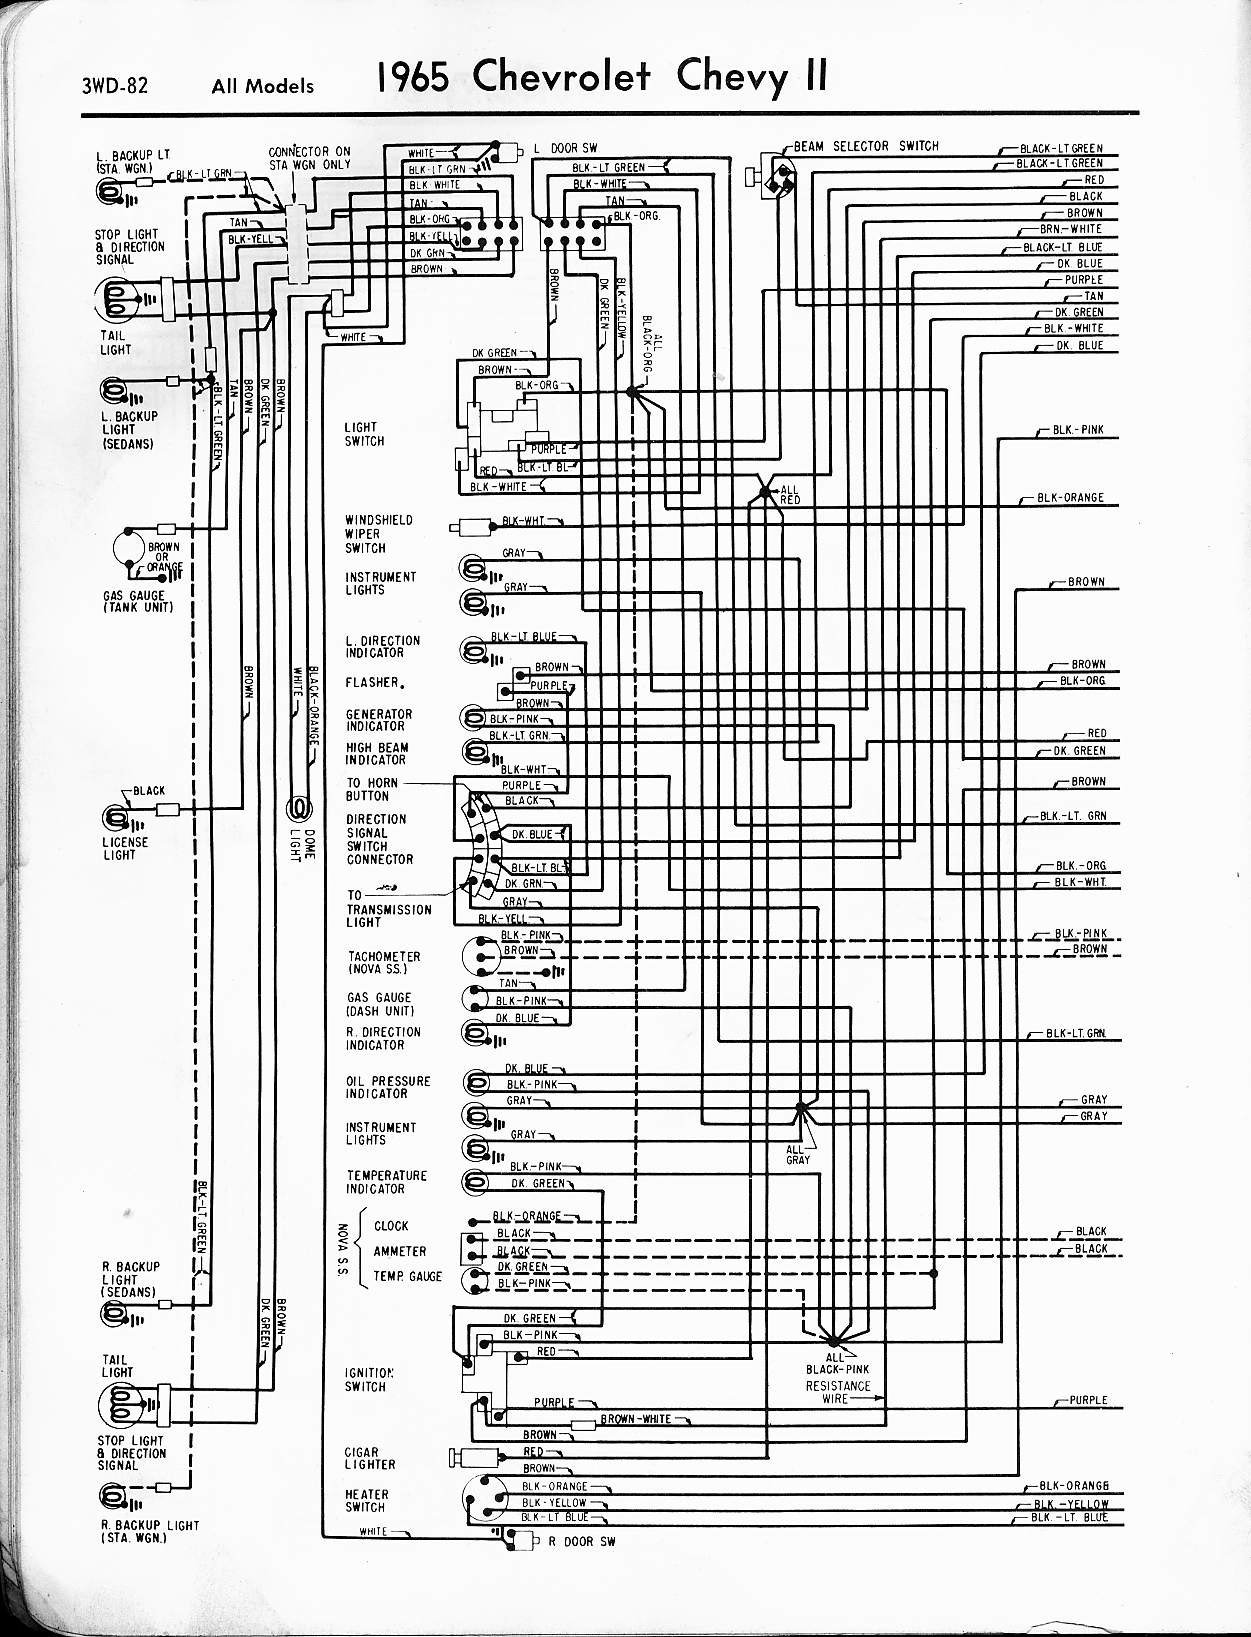 MWireChev65_3WD 082 57 65 chevy wiring diagrams 1965 chevy nova wiring diagram at webbmarketing.co